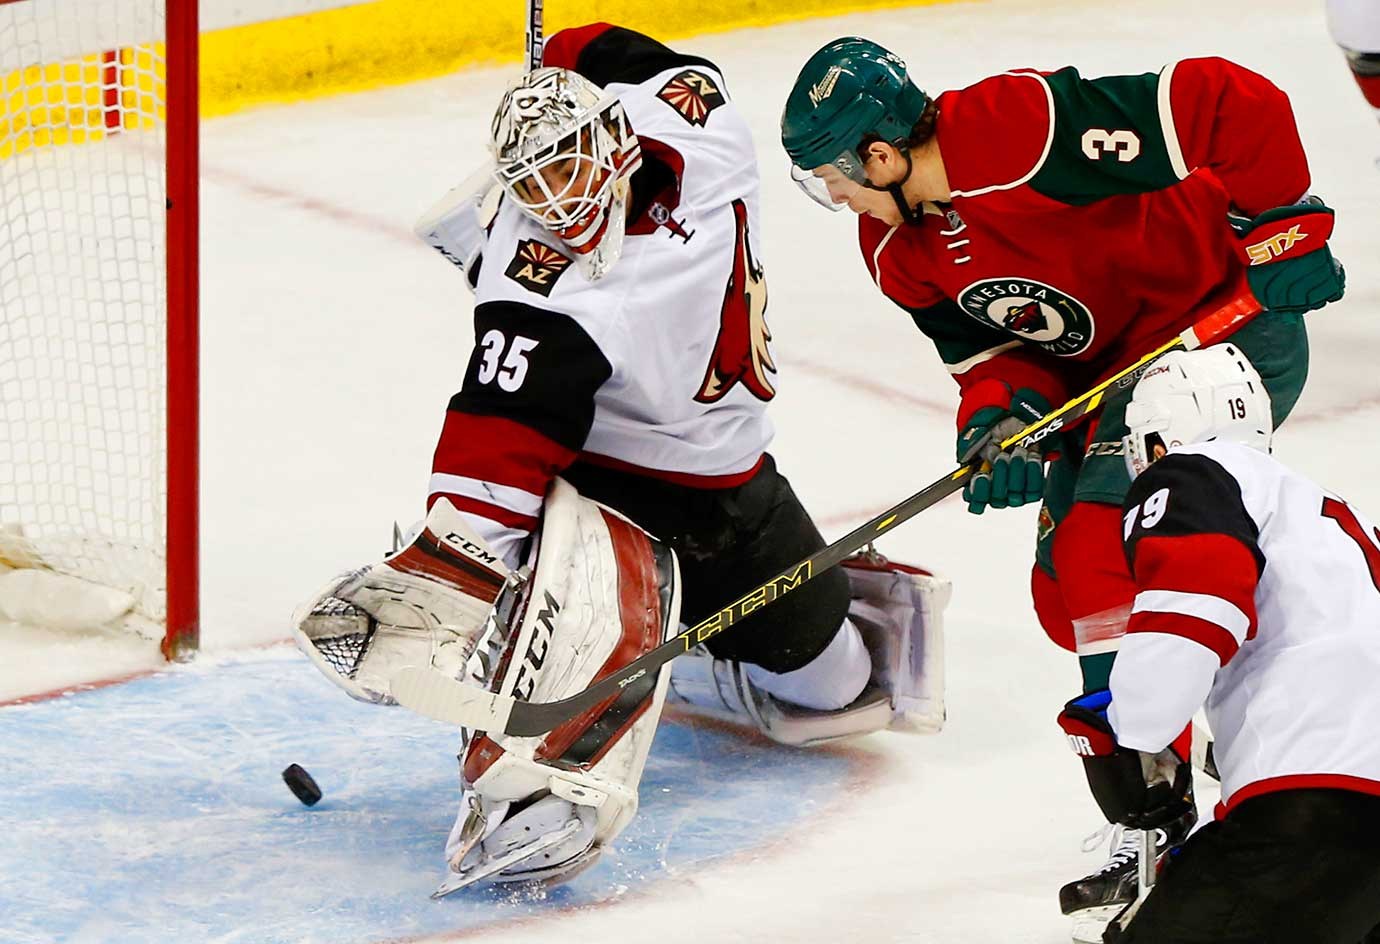 Charlie Coyle of the Minnesota Wild scores against Arizona Coyotes goalie Louis Domingue. The Coyotes won 2-1 in a shootout.